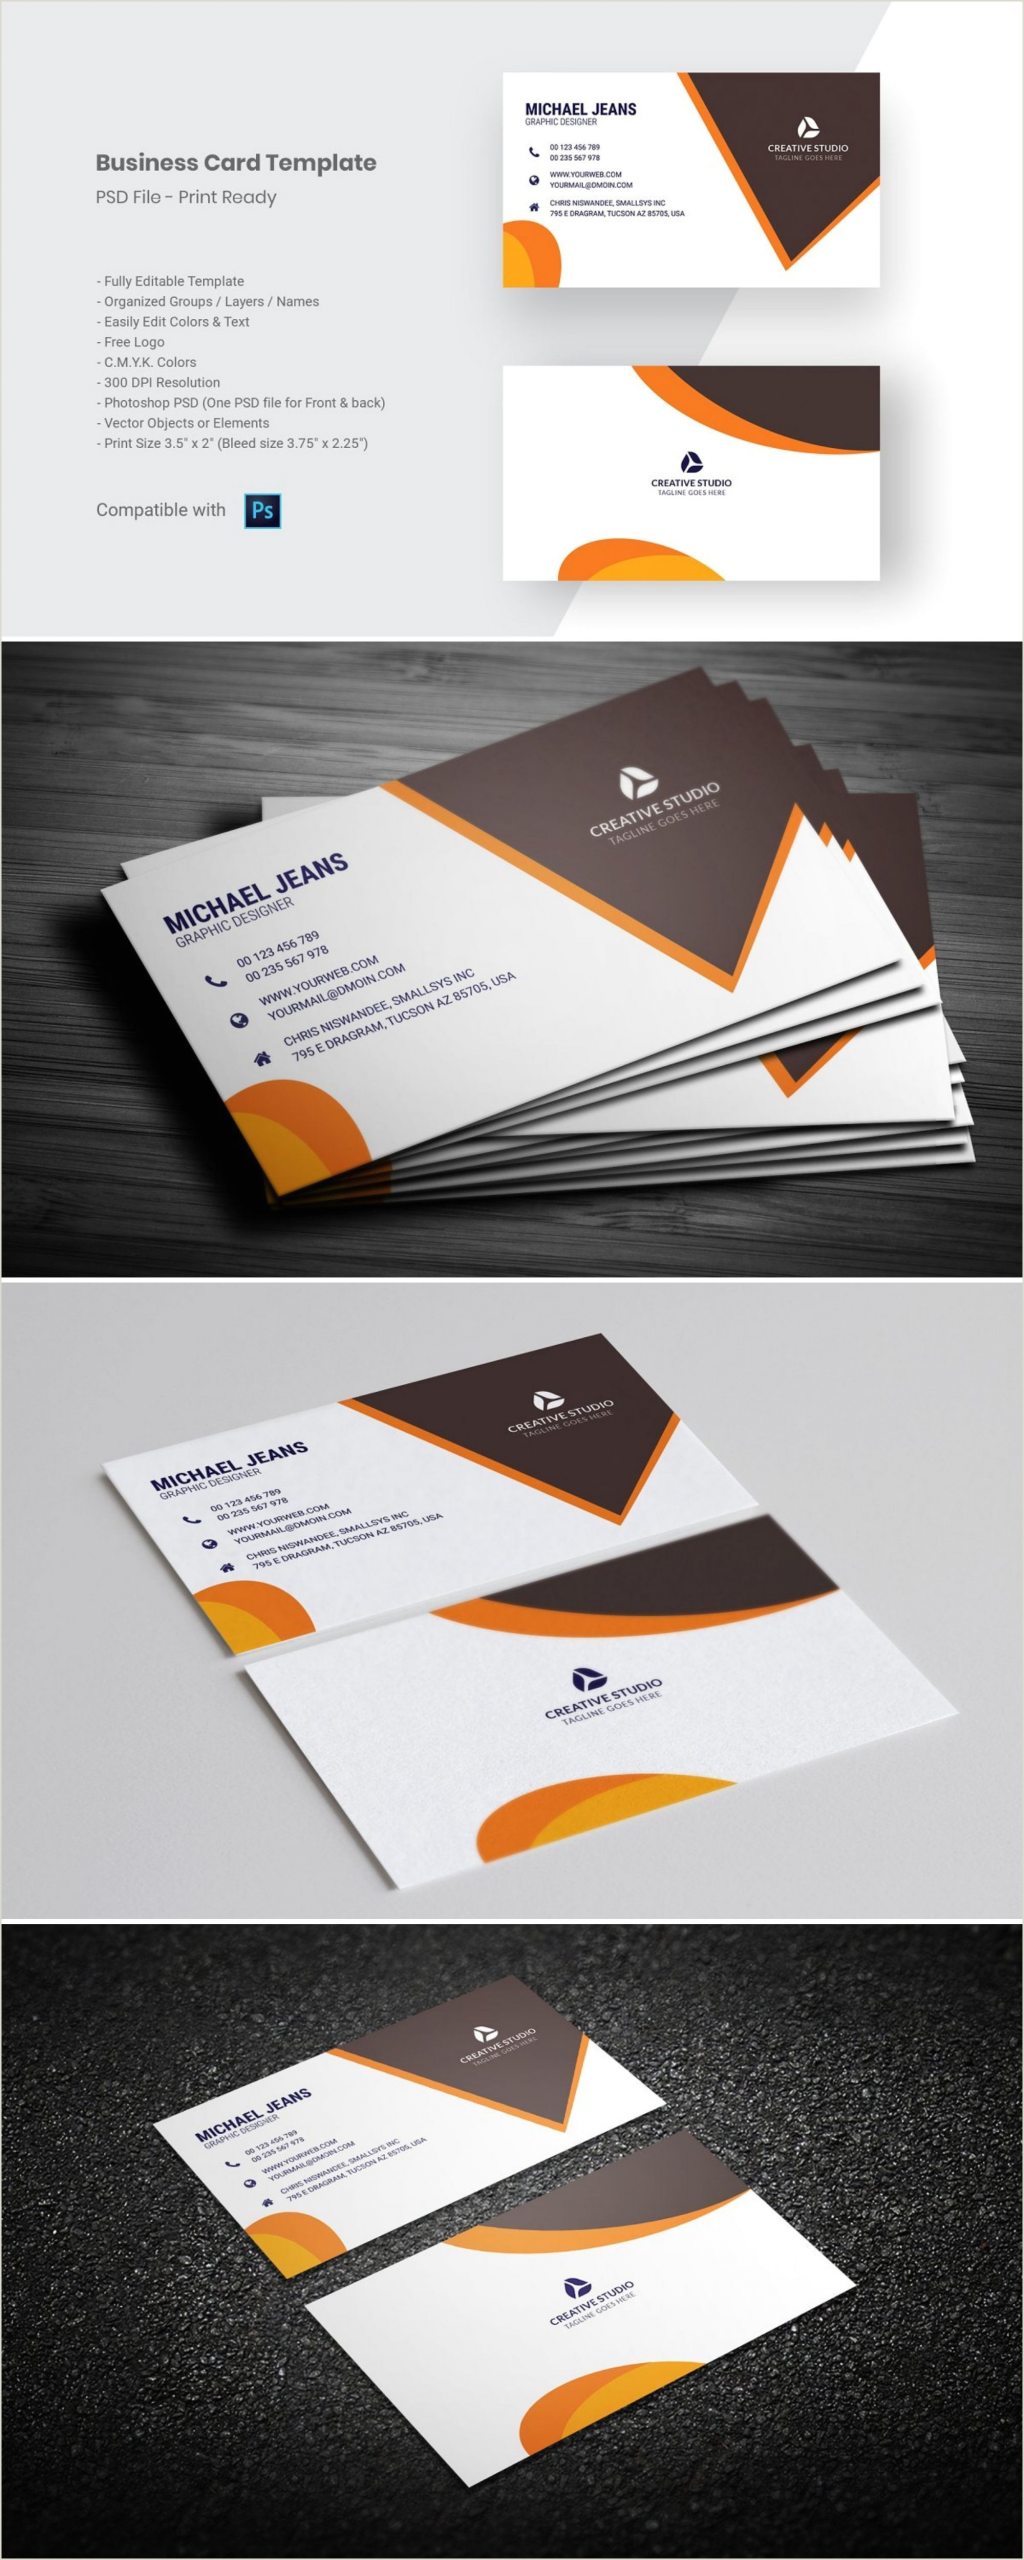 Unique Designs For Business Cards Modern Business Card Template